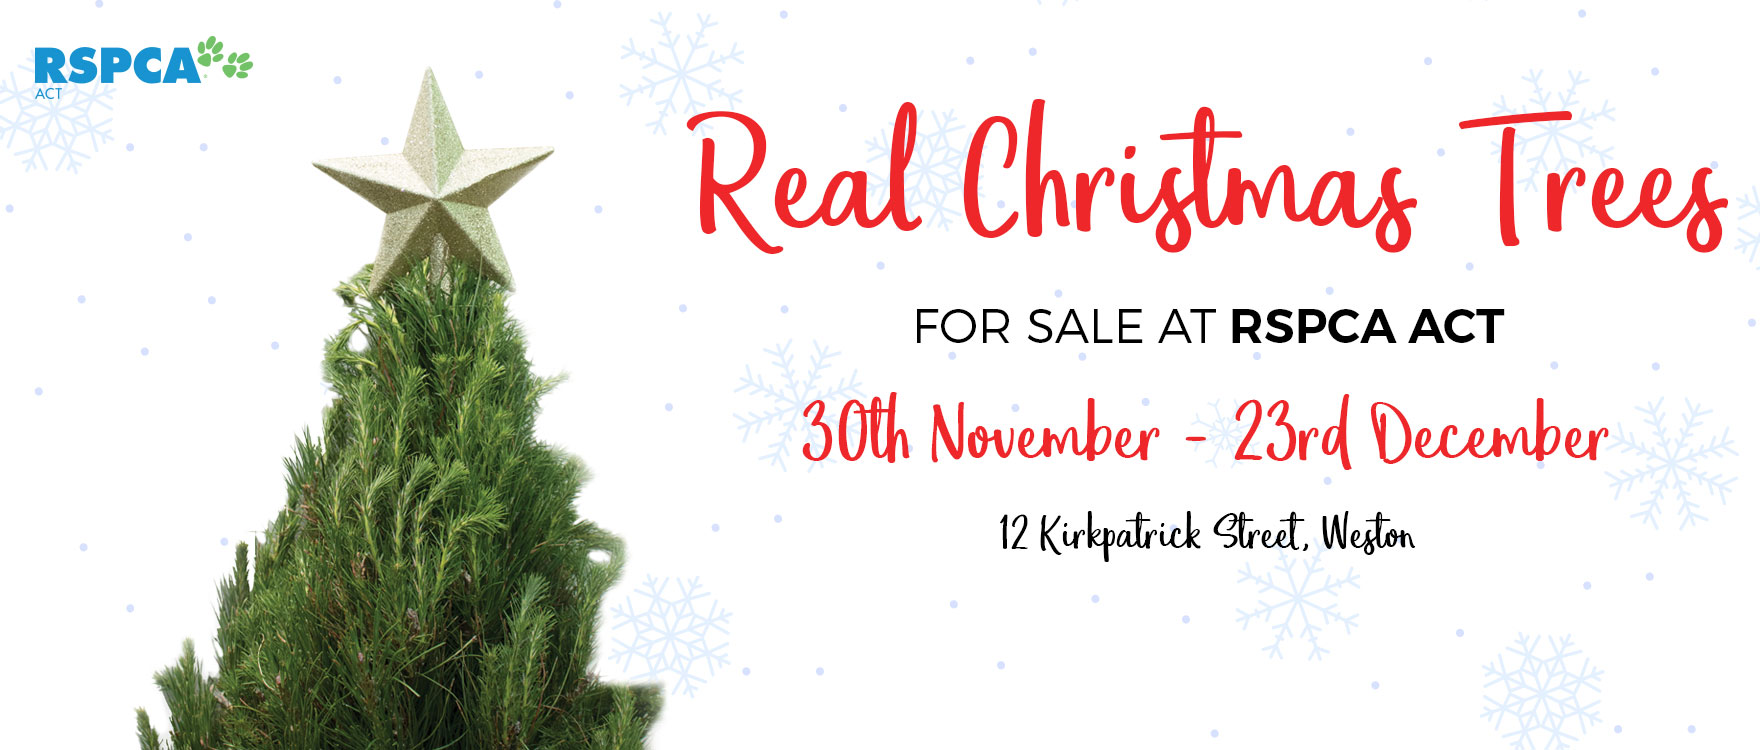 Real Christmas Trees for Sale at RSPCA ACT